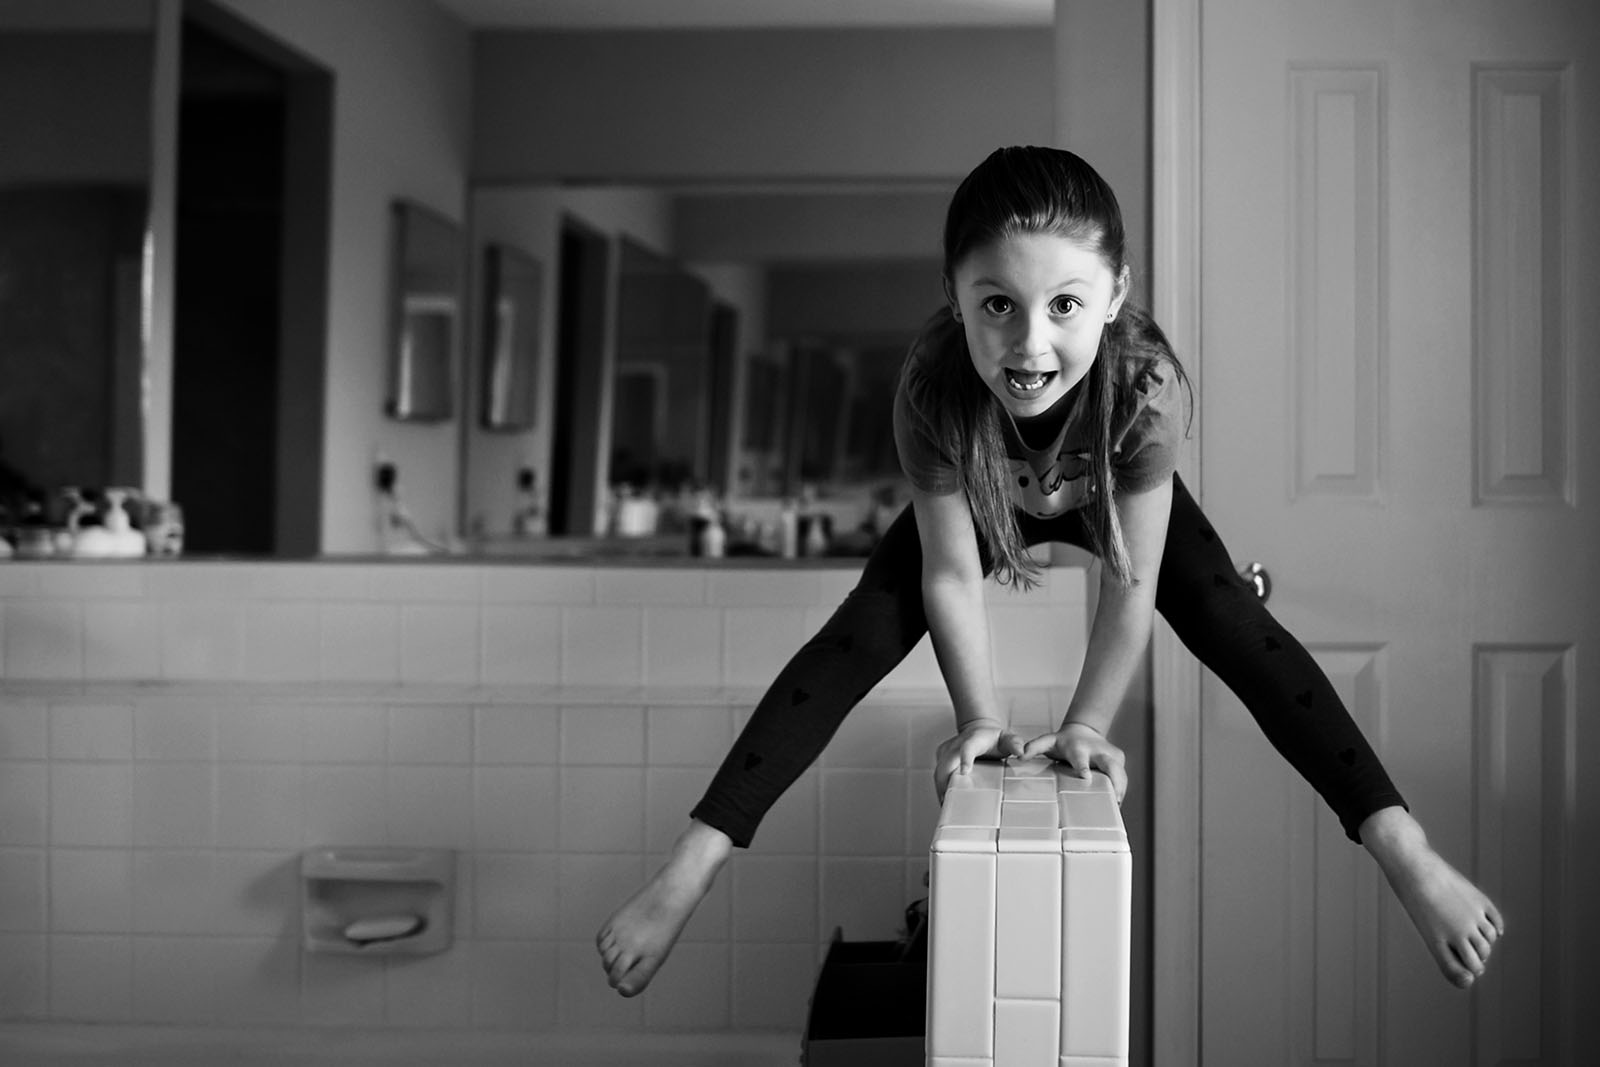 photo of child doing gymnastics in the bathroom by Allison McSorley